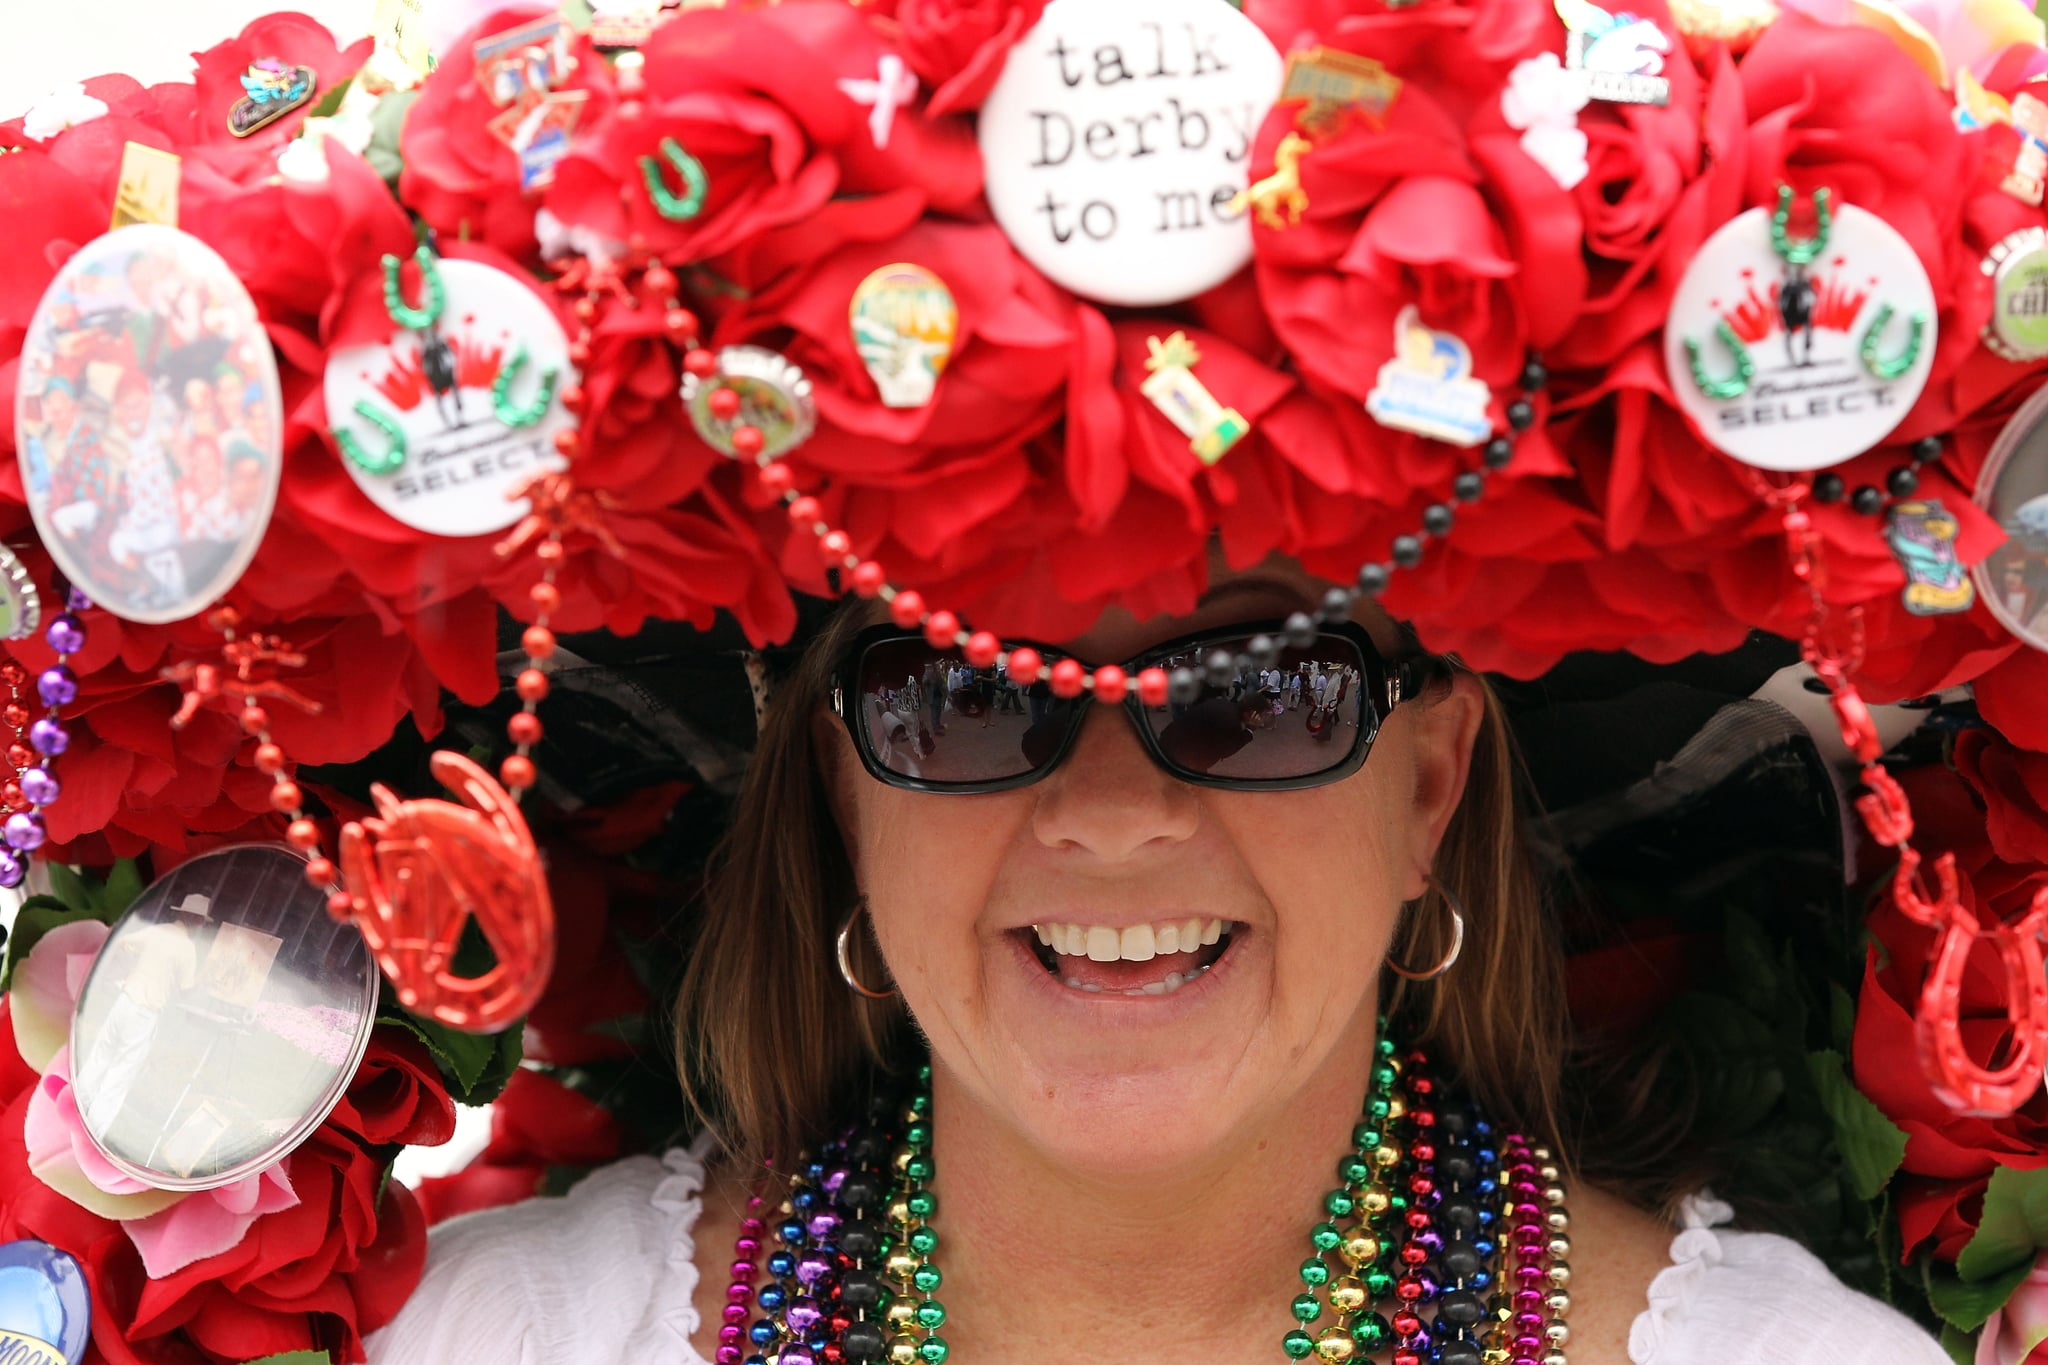 """In 2011, this hat asked people to """"talk Derby to me."""""""